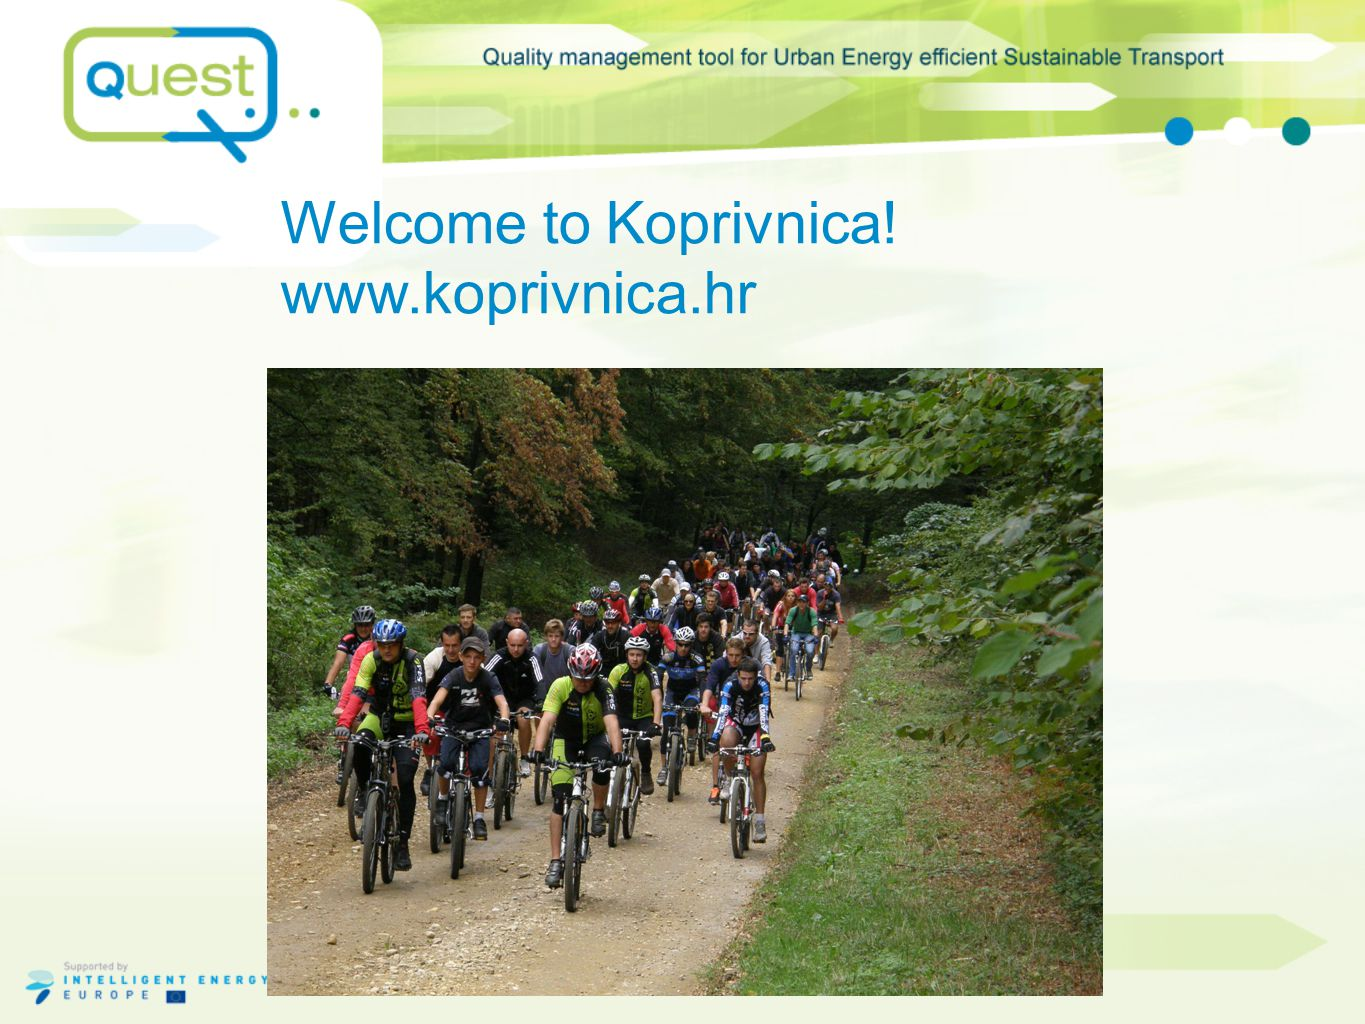 Welcome to Koprivnica! www.koprivnica.hr